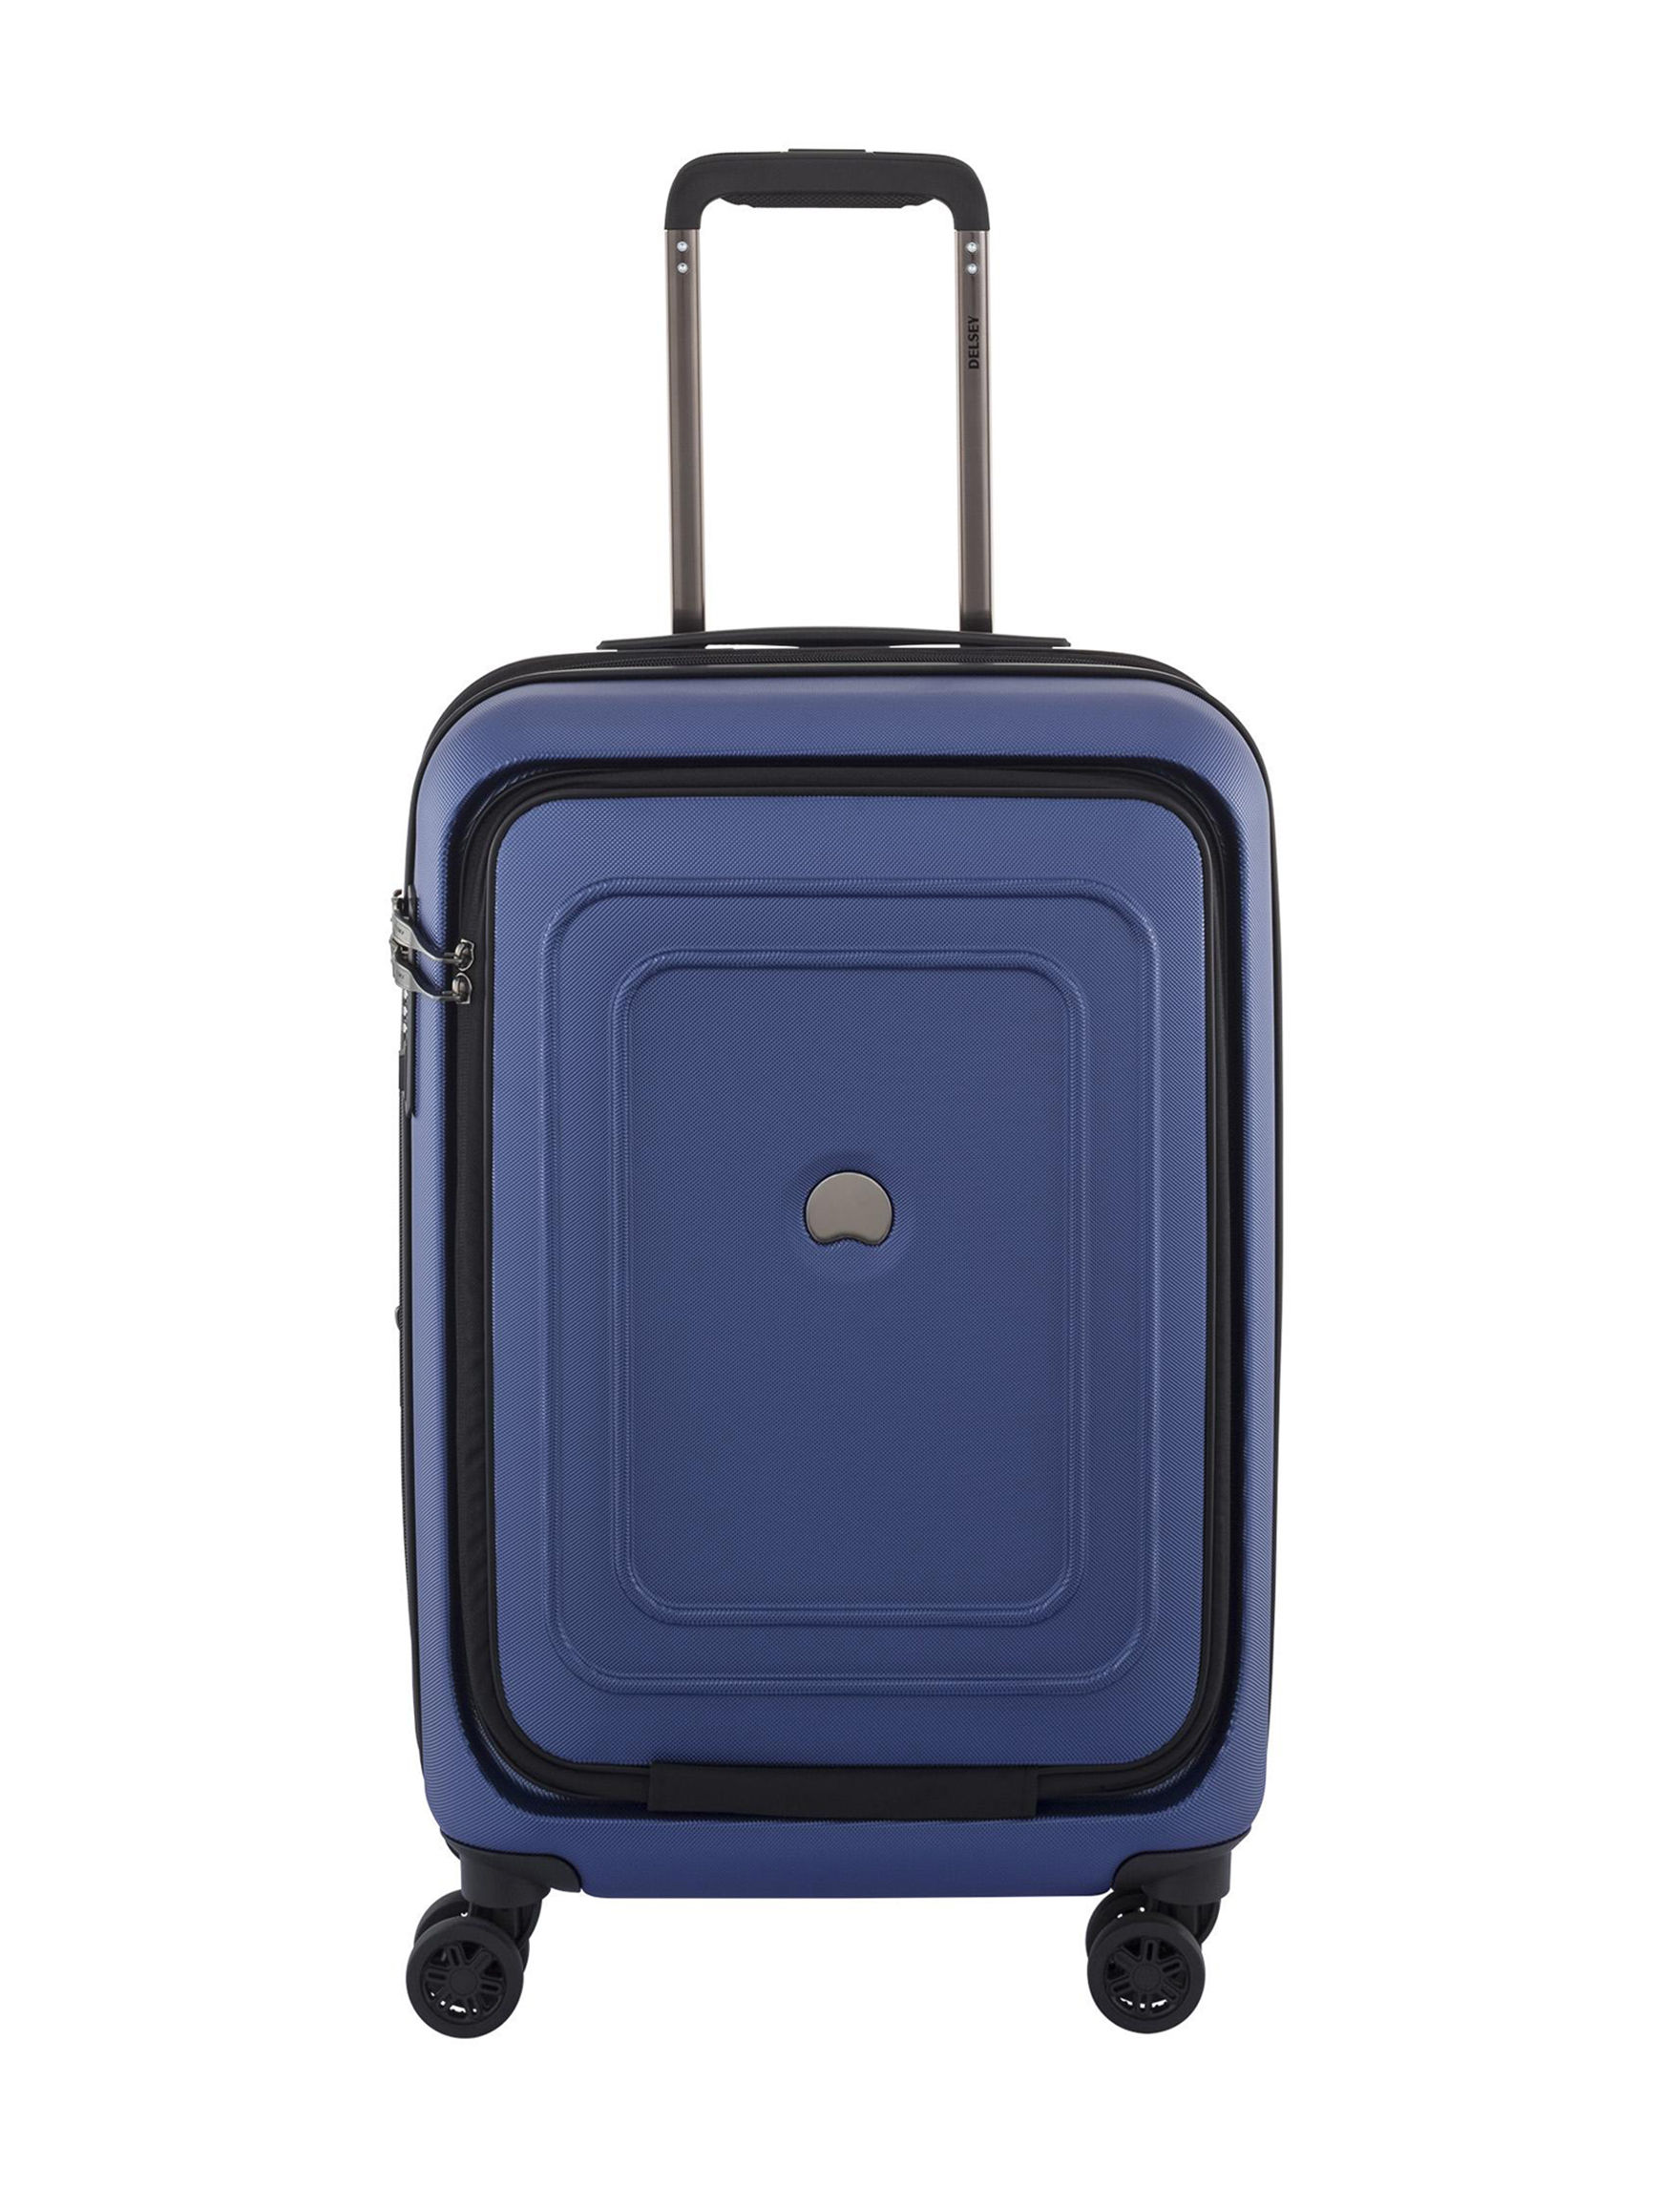 Delsey Blue Carry On Luggage Upright Spinners